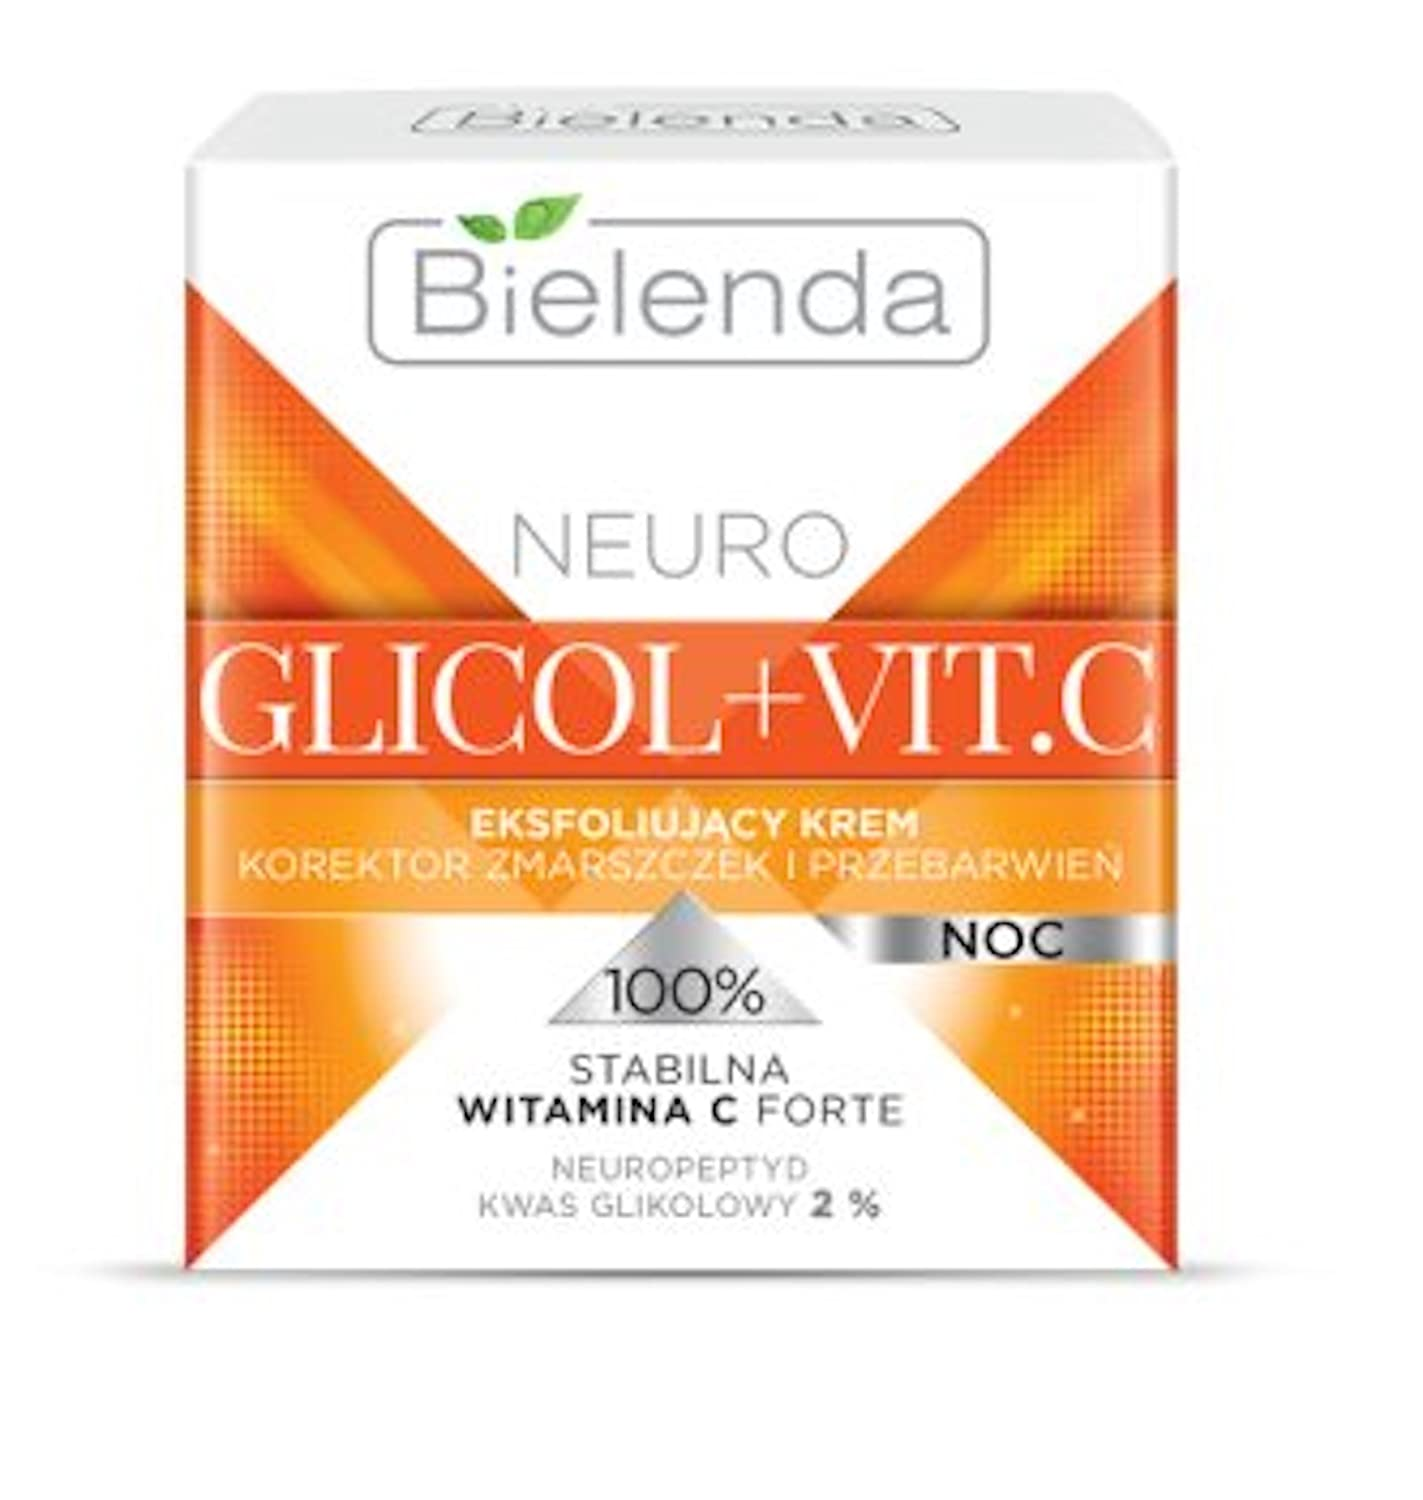 Bielenda GLYCOL+VIT.C Exfoliating Face Night Cream Glow and Youth Activator 50ml